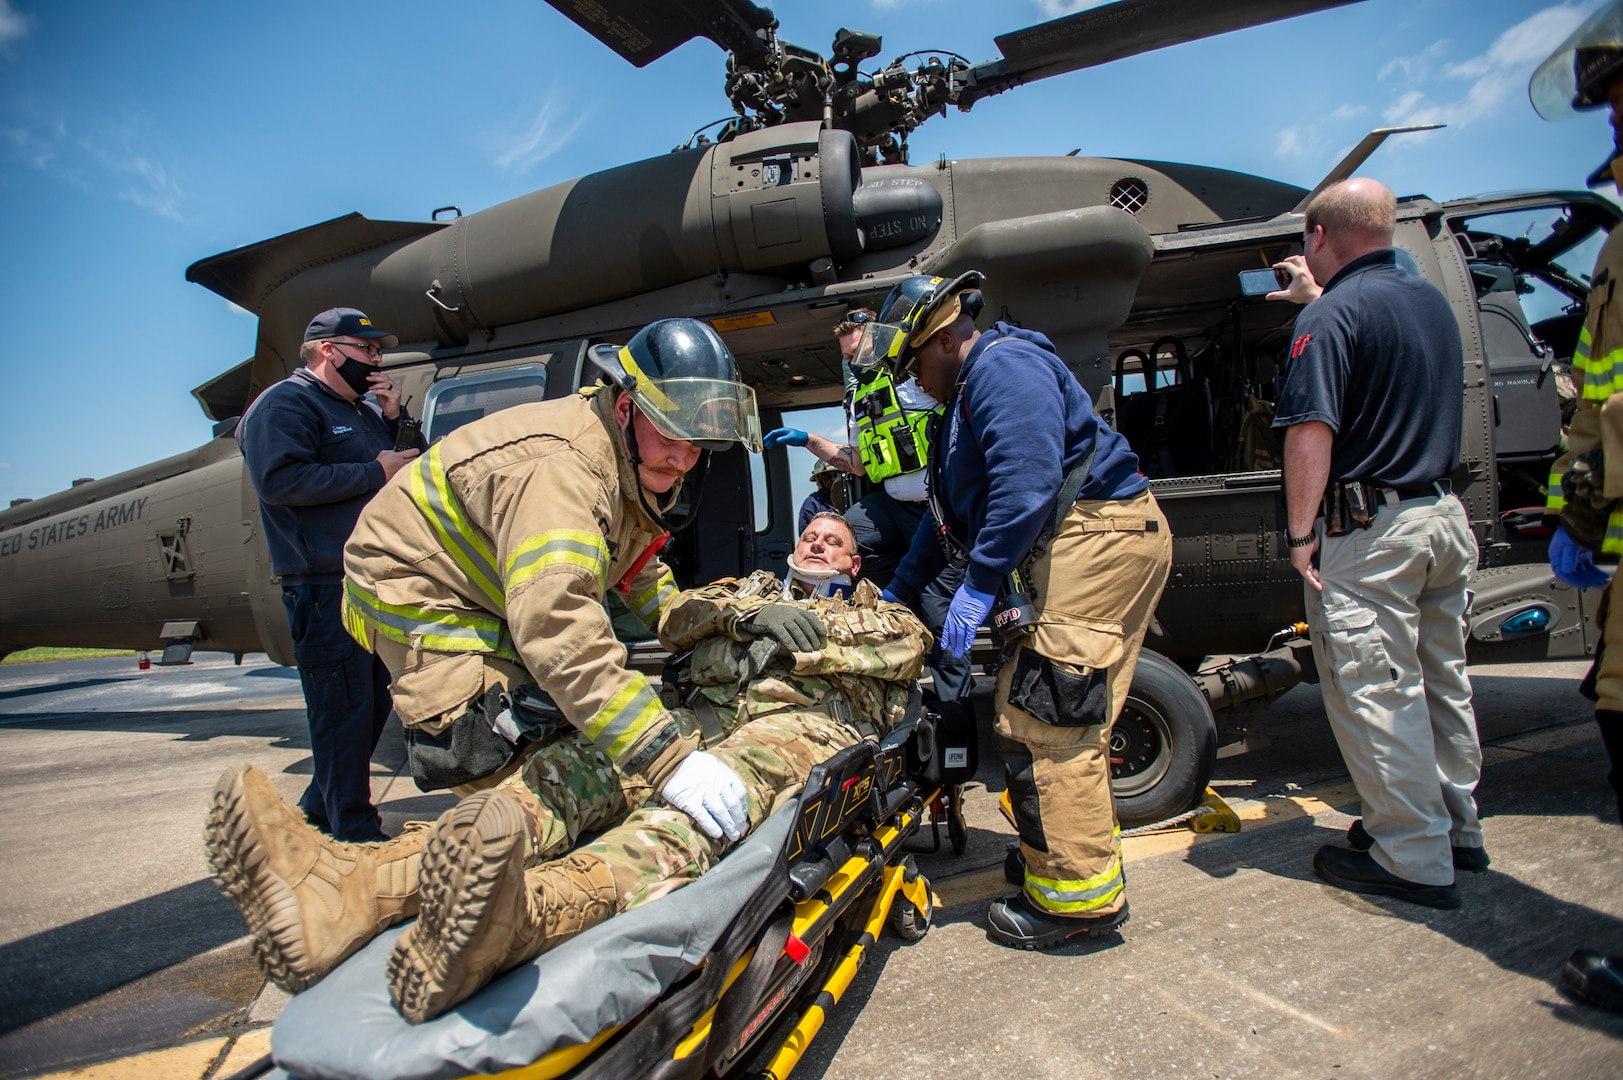 Firefighters and other first responders extract a simulated casualty played by an Oklahoma Army National Guard Citizen-Soldier from a mock helicopter crash during training at the Guard's Army Aviation Support Facility 2 in Tulsa, Oklahoma, May 12, 2021. The training prepares Army aviation units to respond to accidents ranging from slip and falls to mass casualty events.